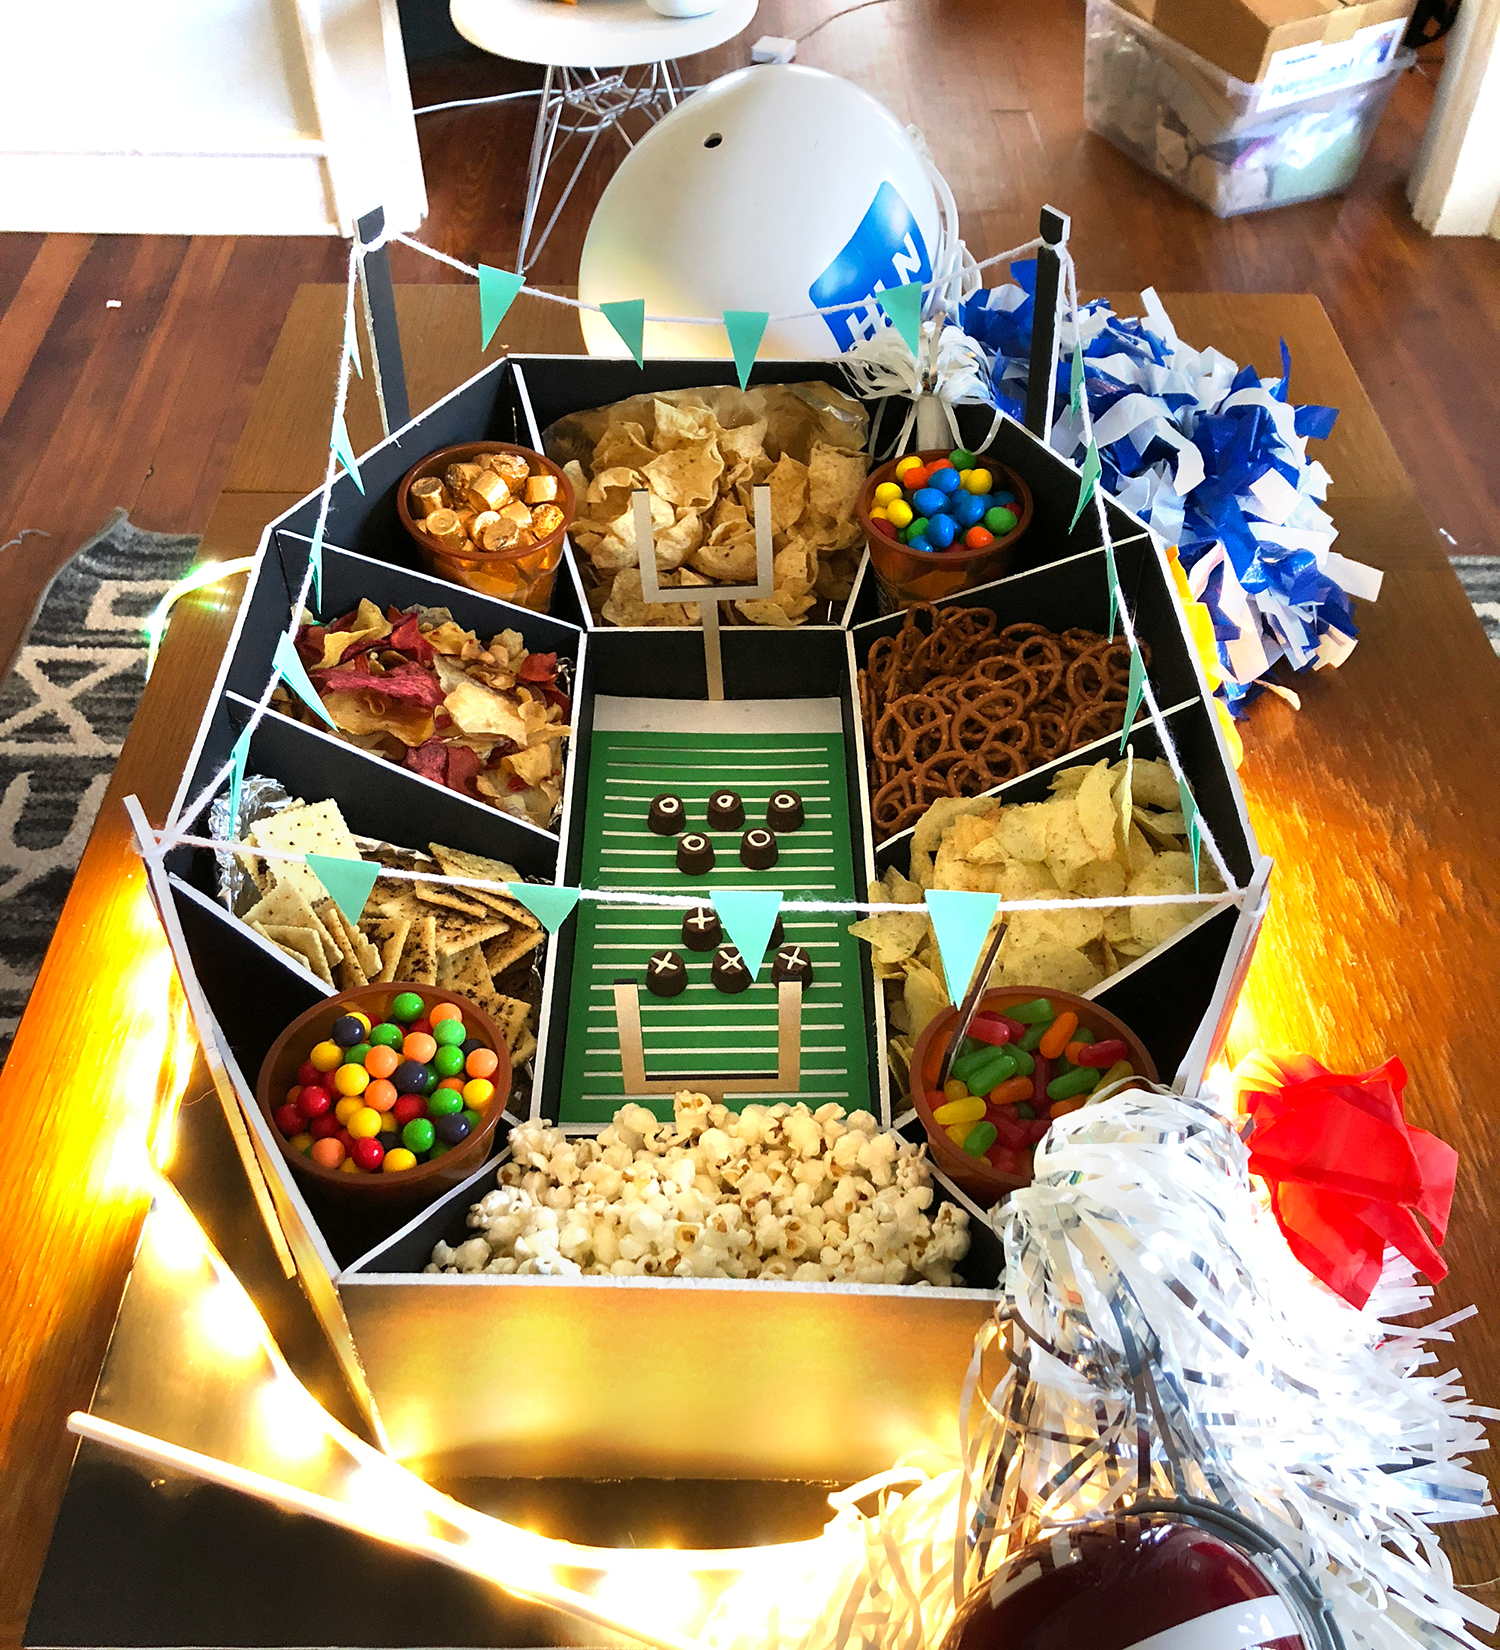 How to Build Your Own Snack Stadium